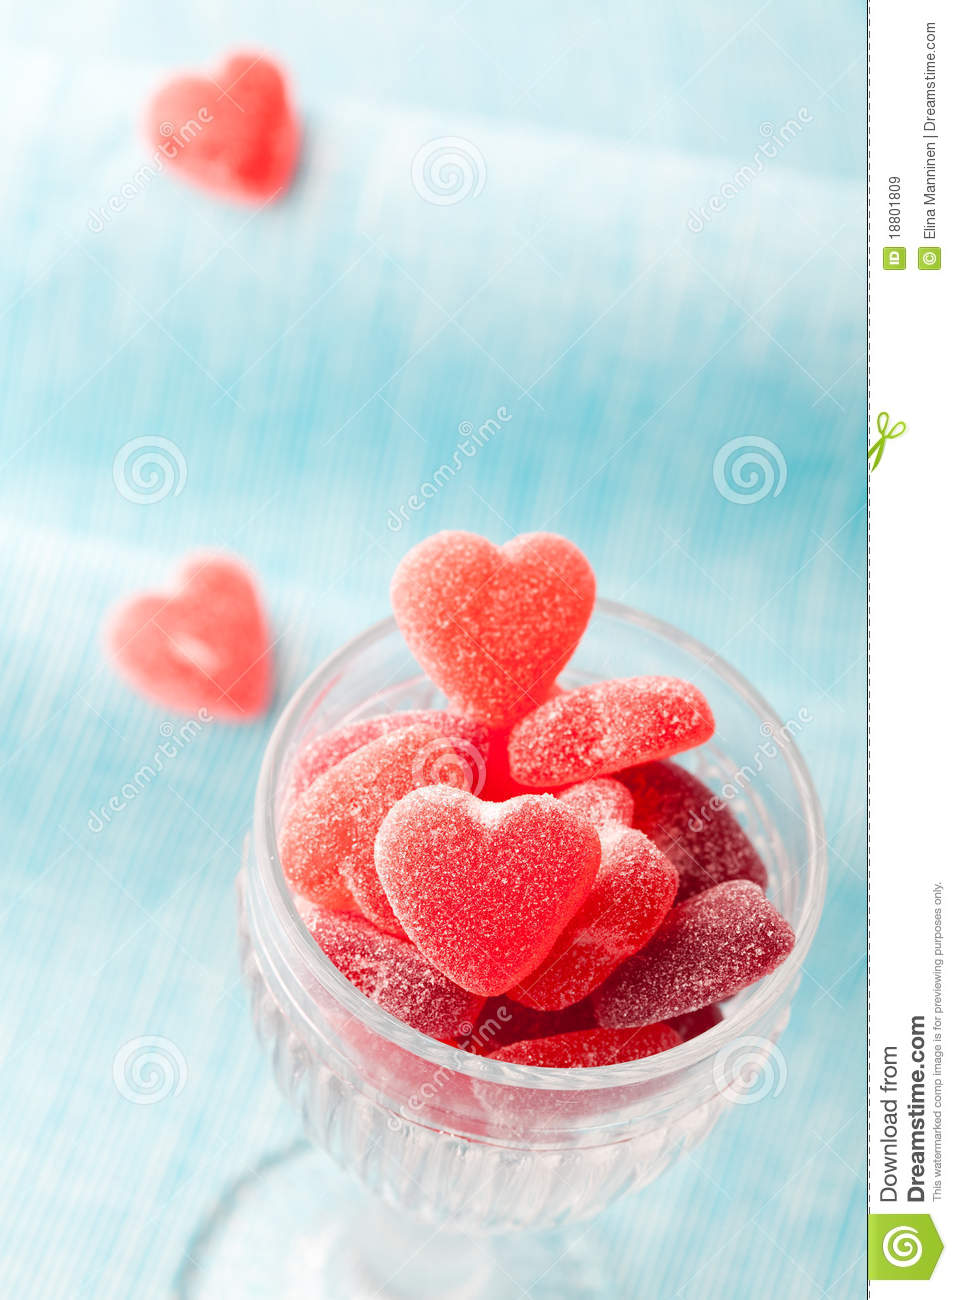 Download Heart candy stock image. Image of background, treat, candy - 18801809